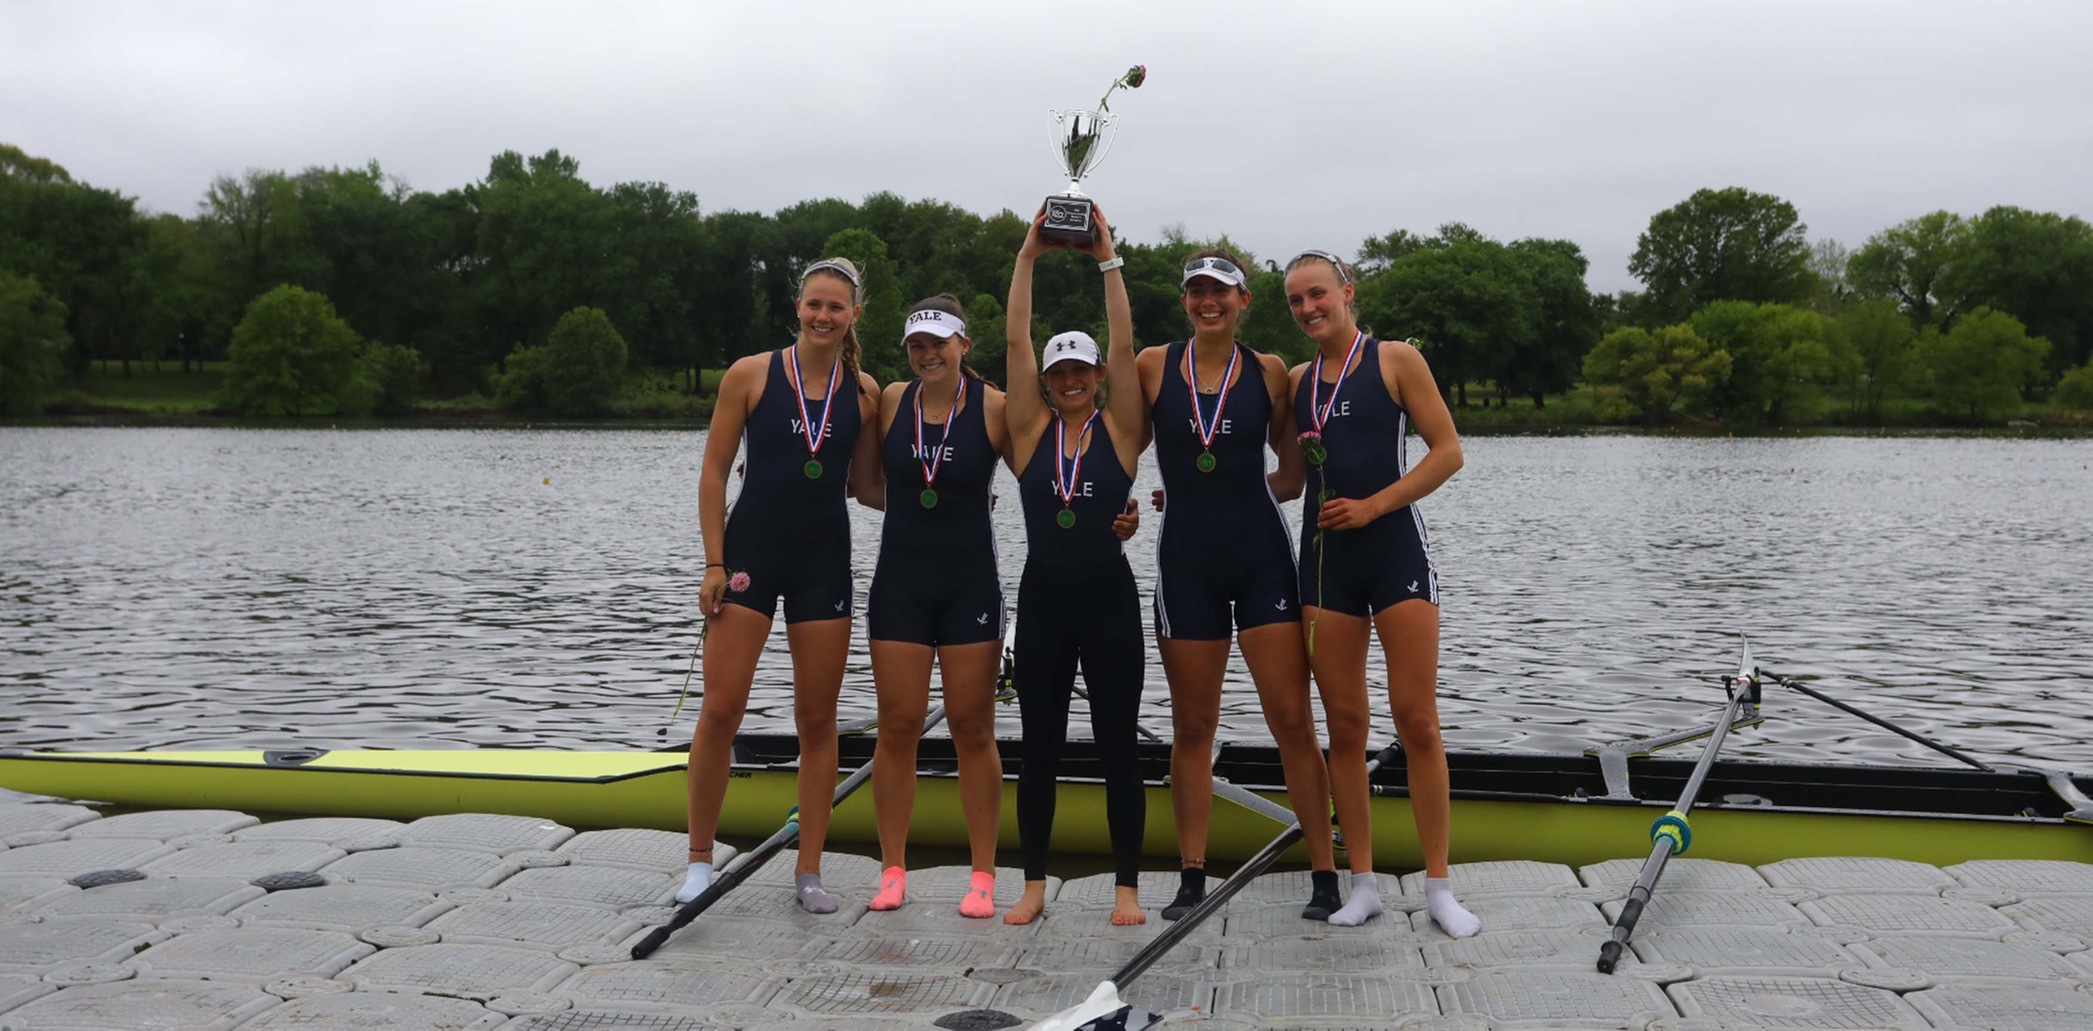 The Ivy League champion varsity four will be one of the three crews competing at the NCAA Championship. (Ahsan Iqbal photo)